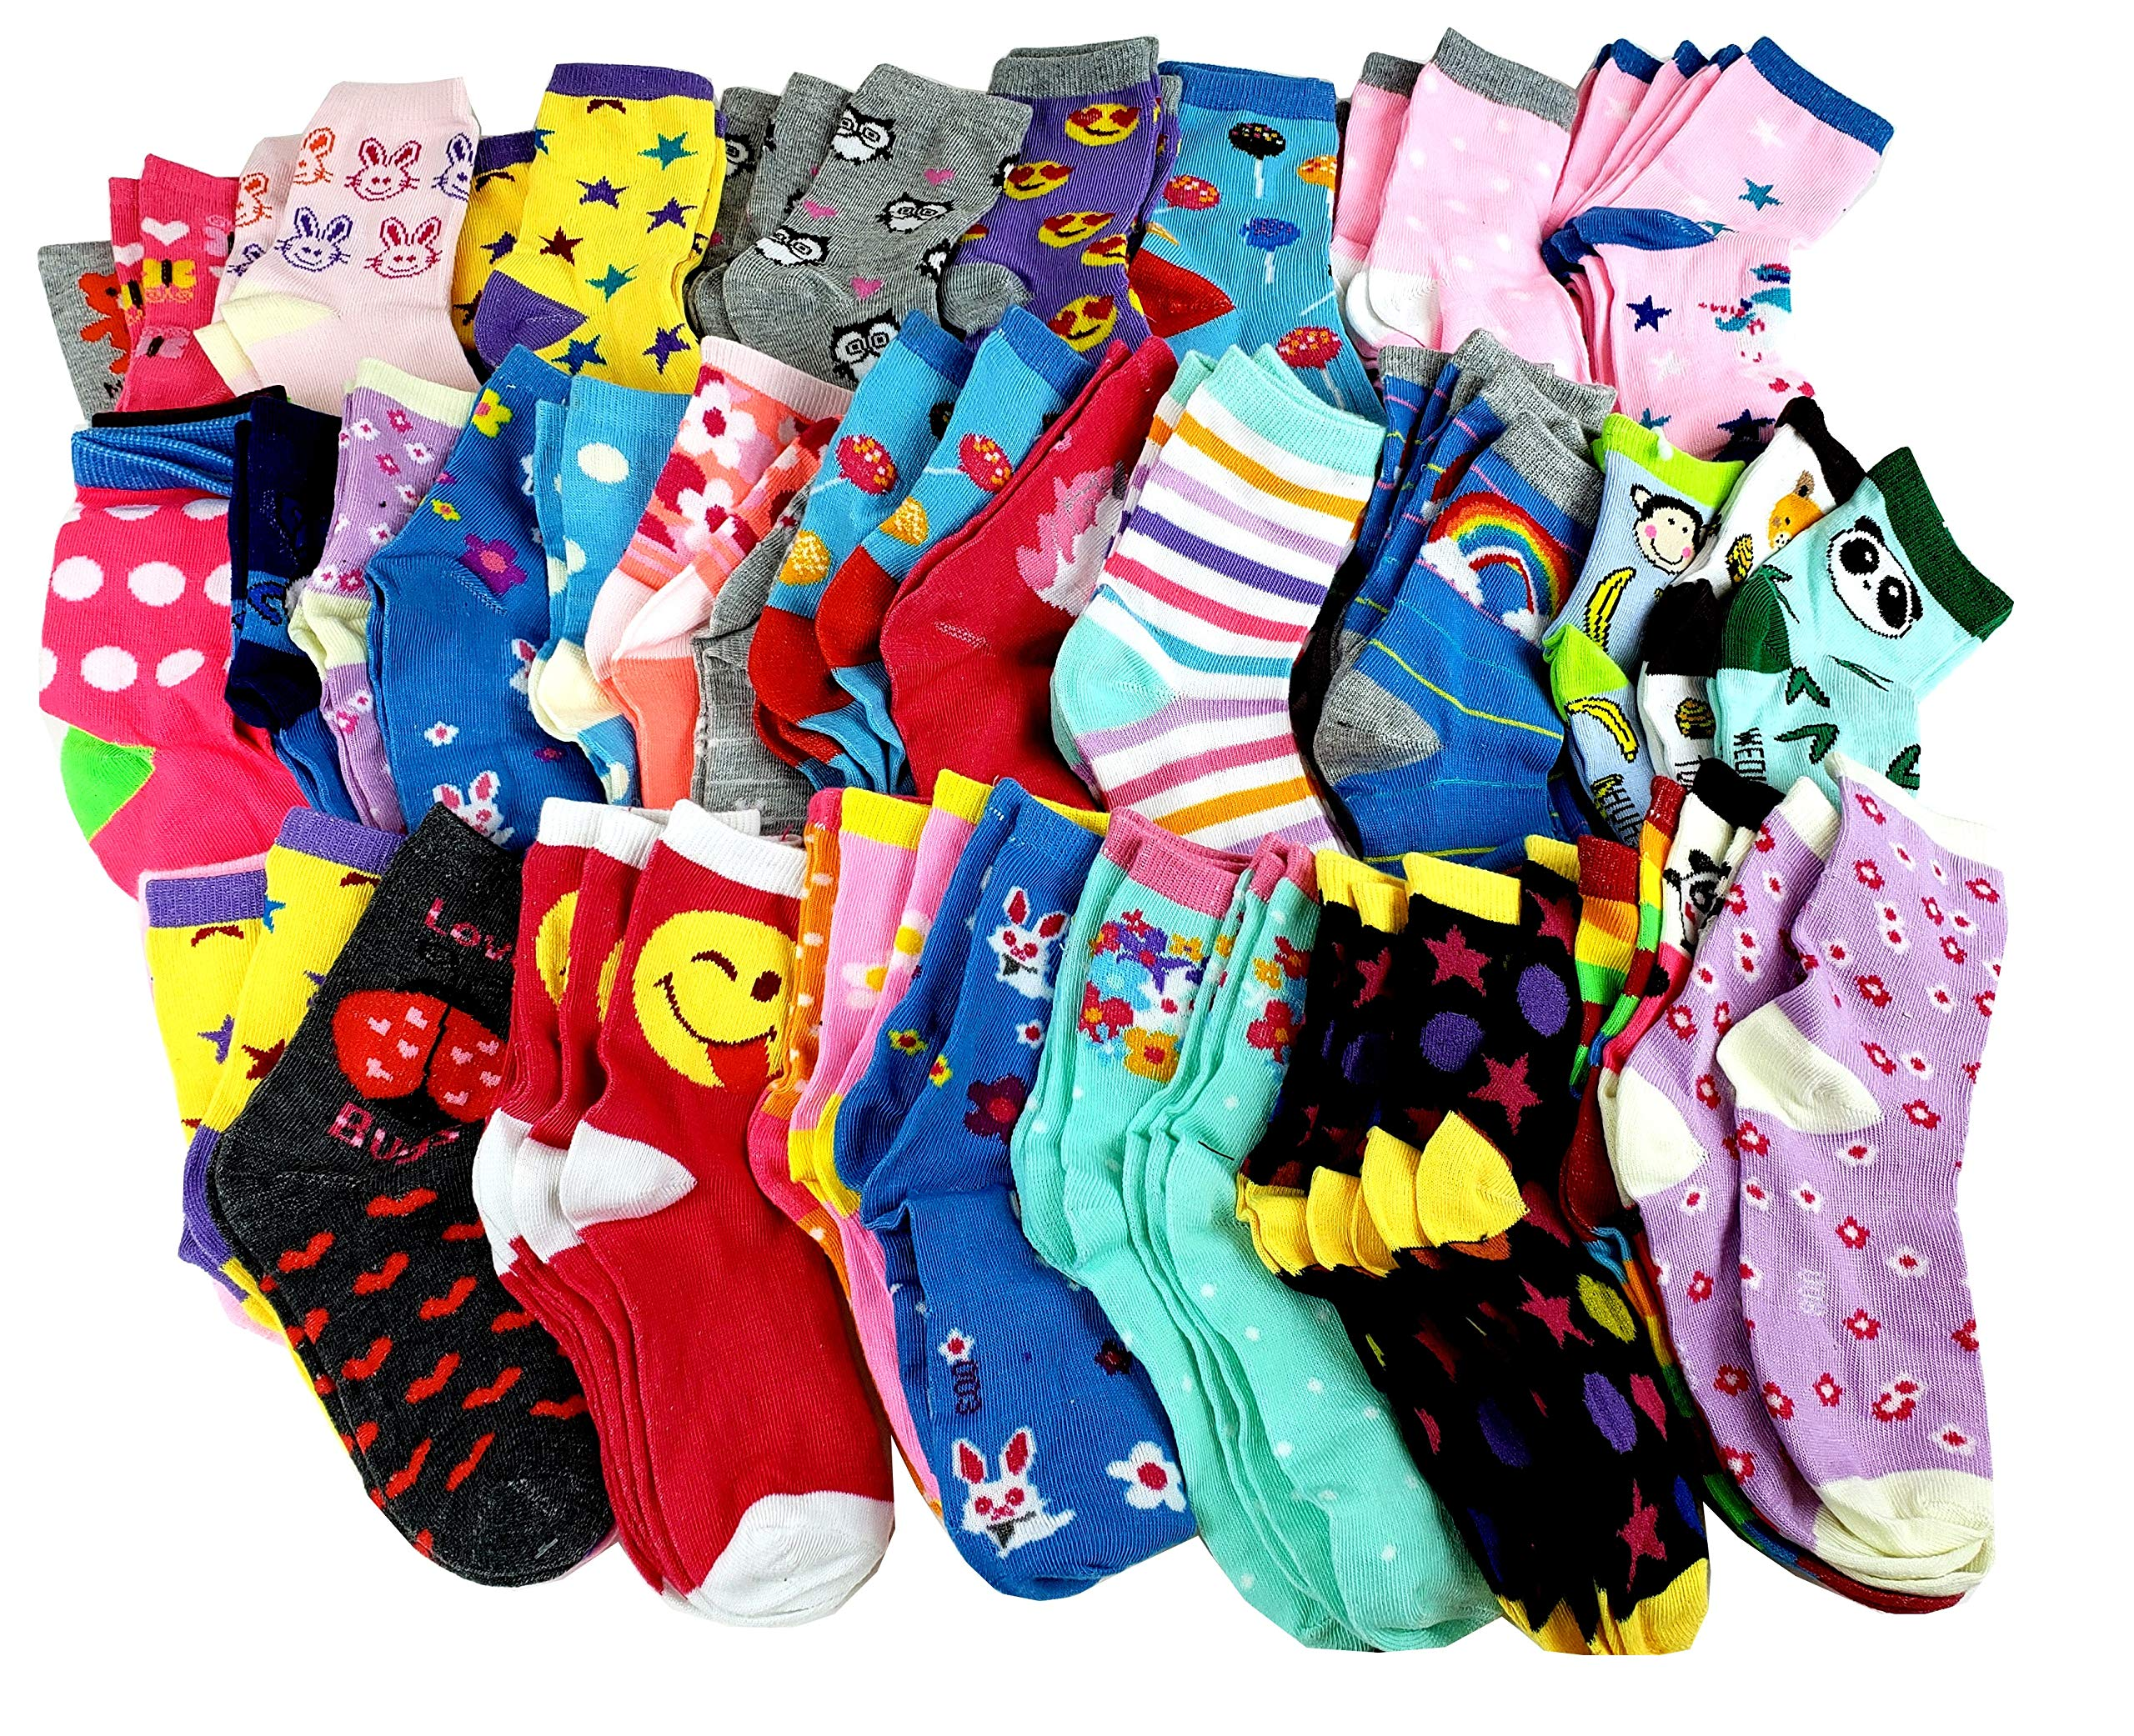 100 Pairs Wholesale Bulk lot Kids Girls Assorted Novelty Design Crew Socks (4-6, Assorted)